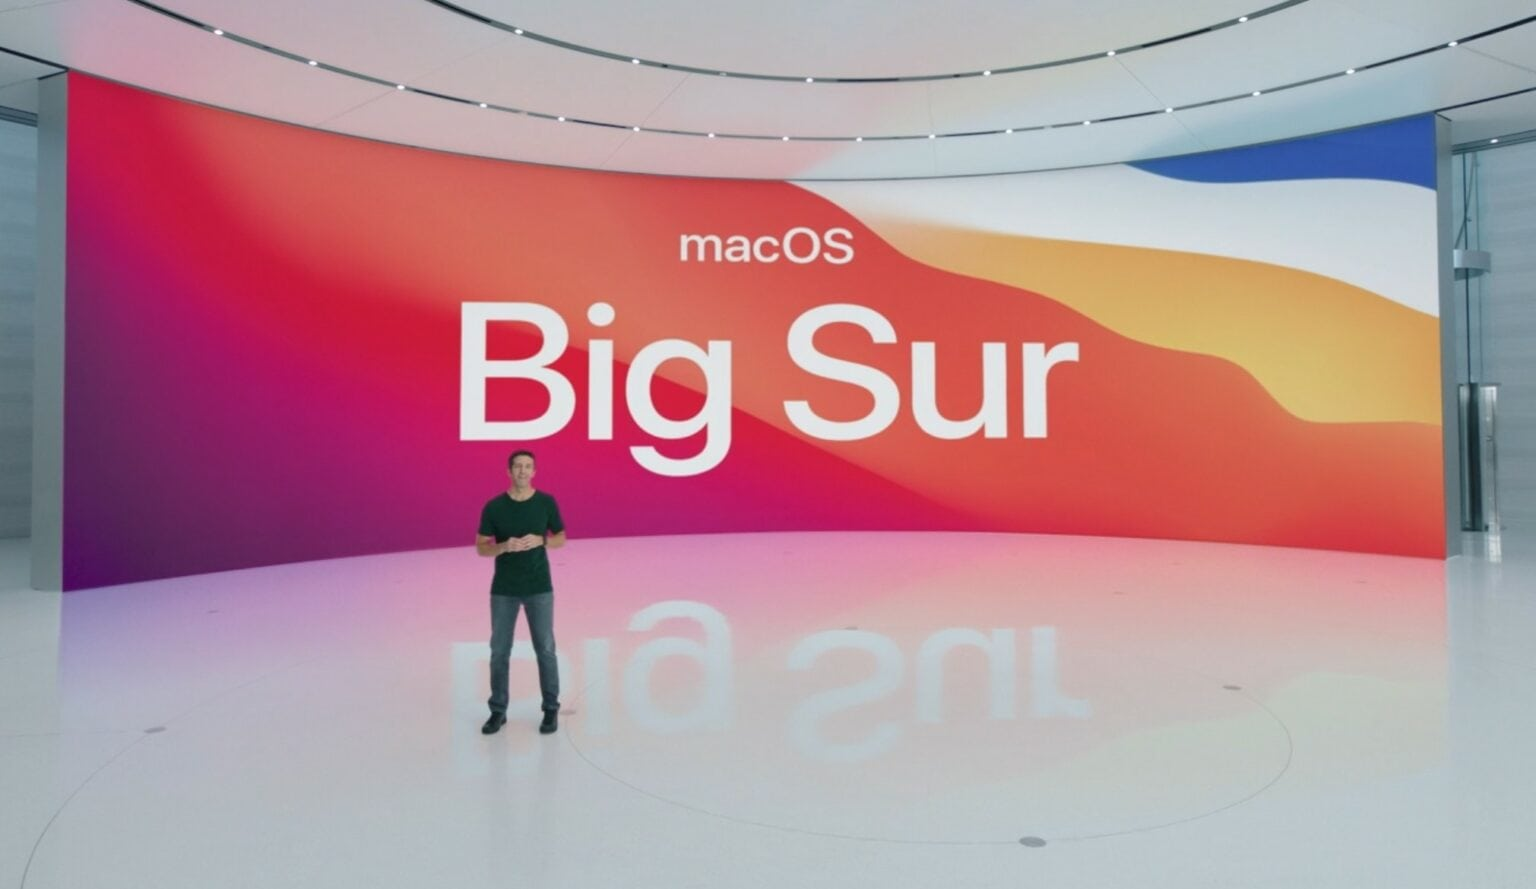 With macOS Big Sur, Apple takes things to the next level.